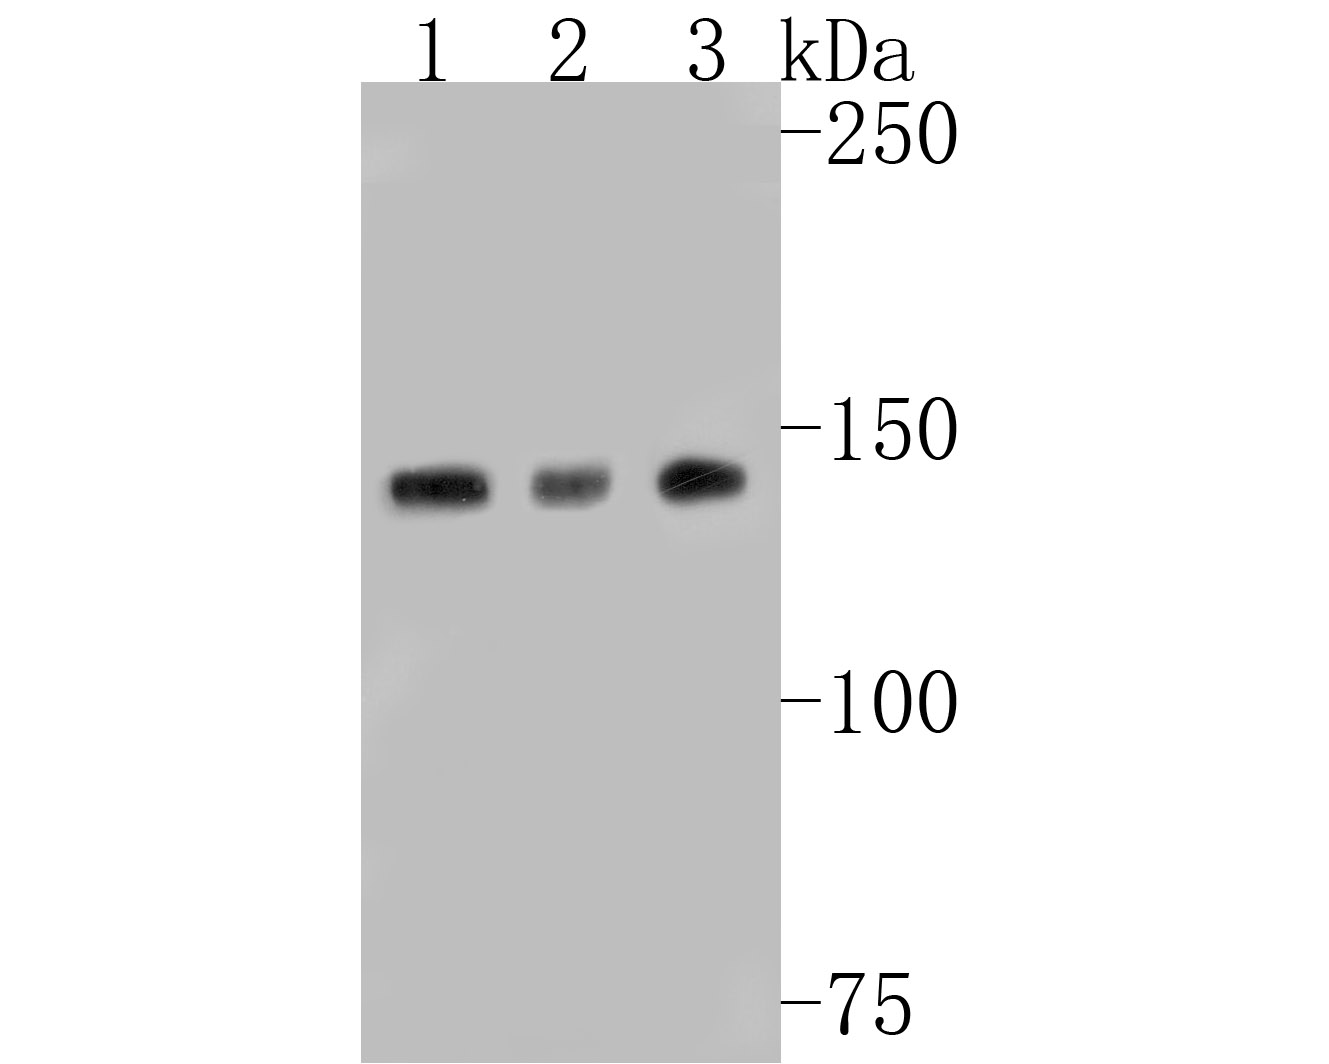 Western blot analysis of N Cadherin on different lysates. Proteins were transferred to a PVDF membrane and blocked with 5% BSA in PBS for 1 hour at room temperature. The primary antibody (ET1607-37, 1/500) was used in 5% BSA at room temperature for 2 hours. Goat Anti-Rabbit IgG - HRP Secondary Antibody (HA1001) at 1:5,000 dilution was used for 1 hour at room temperature.<br /> Positive control: <br /> Lane 1: SH-SY5Y cell lysate<br /> Lane 2: Hela cell lysate<br /> Lane 3: NIH/3T3 cell lysate